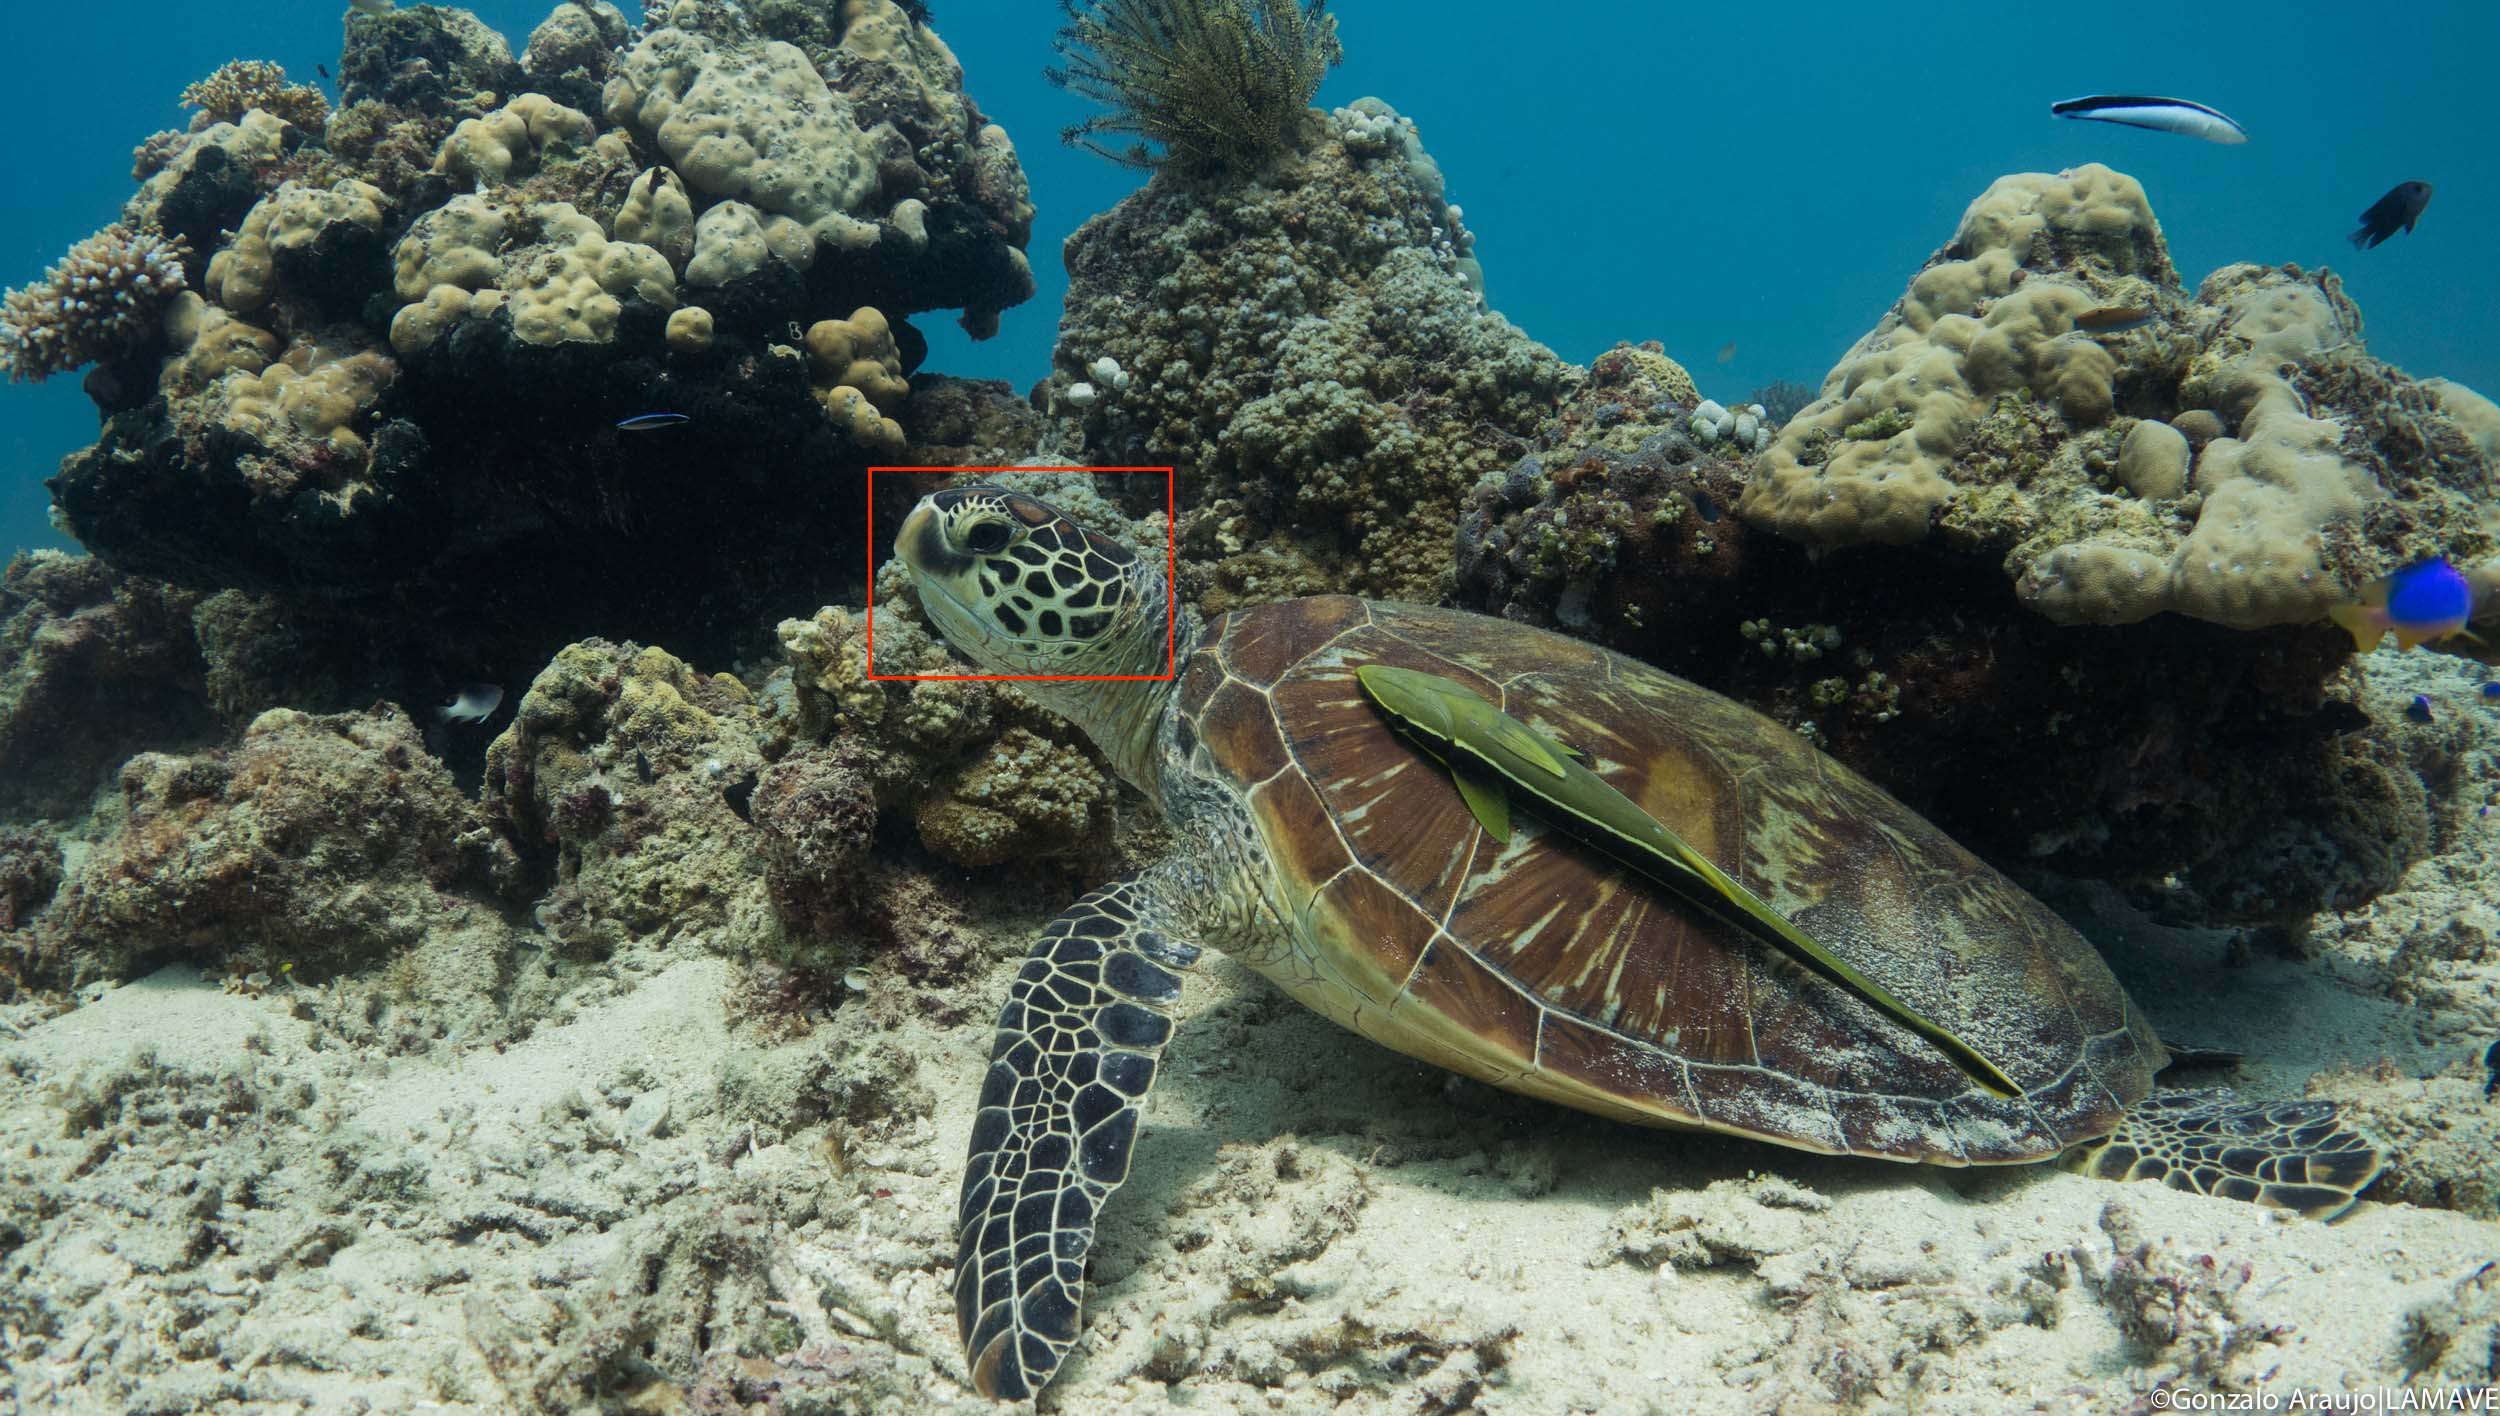 The area used for the photo identification of green turtles